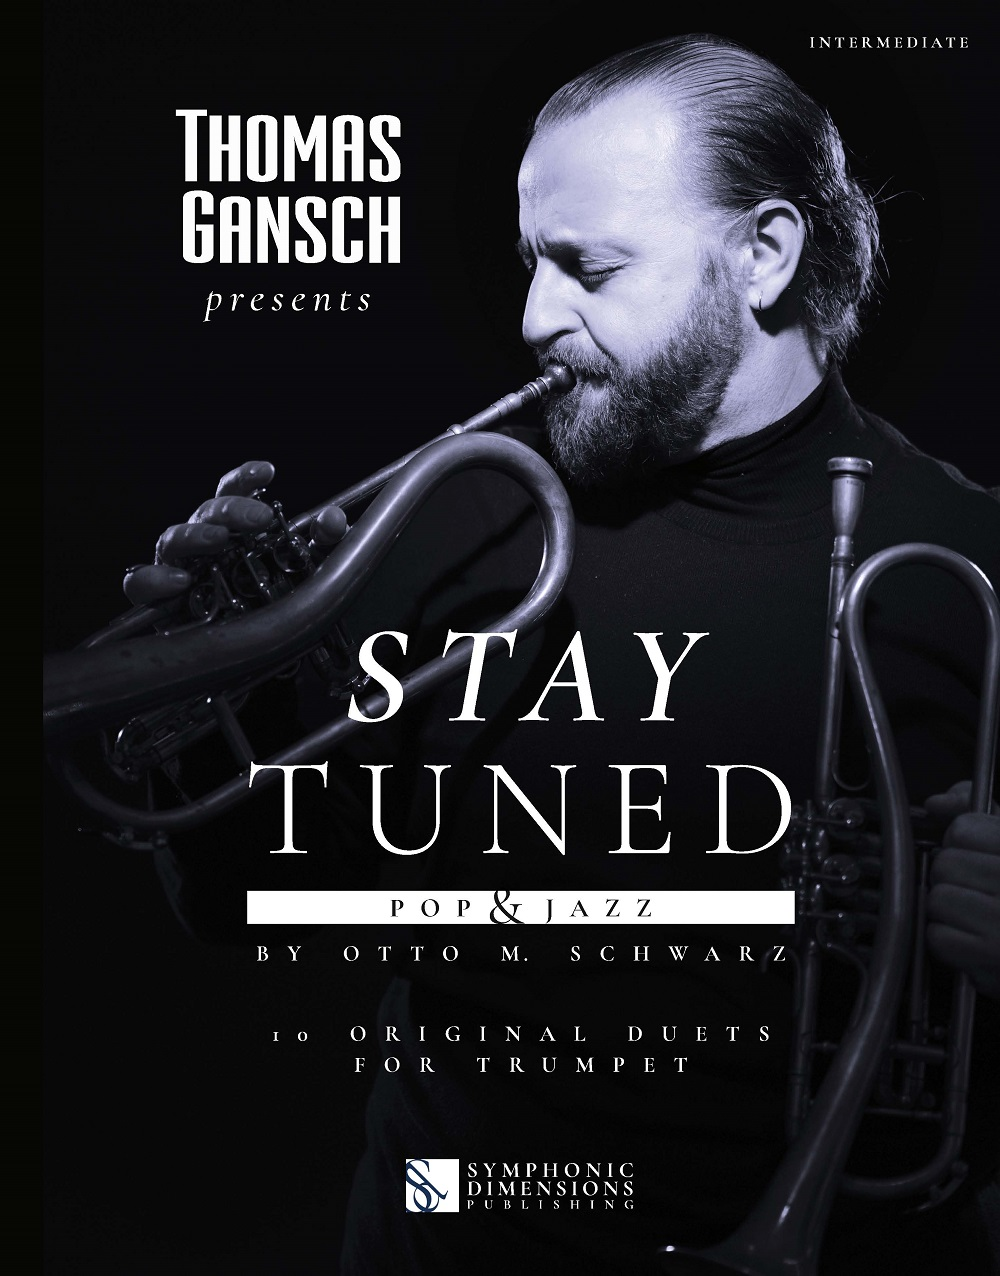 Otto M. Schwarz: Thomas Gansch presents Stay Tuned - Pop & Jazz: Trumpet Duet: